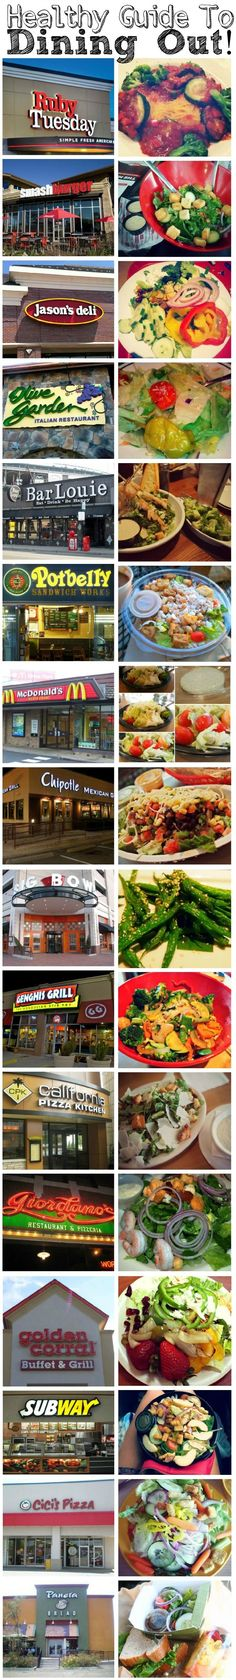 Healthy Guide to Dining out at your favorite restaurants! Tons of healthy options and tips to staying on track! No croutons and no bread to lower the carbs